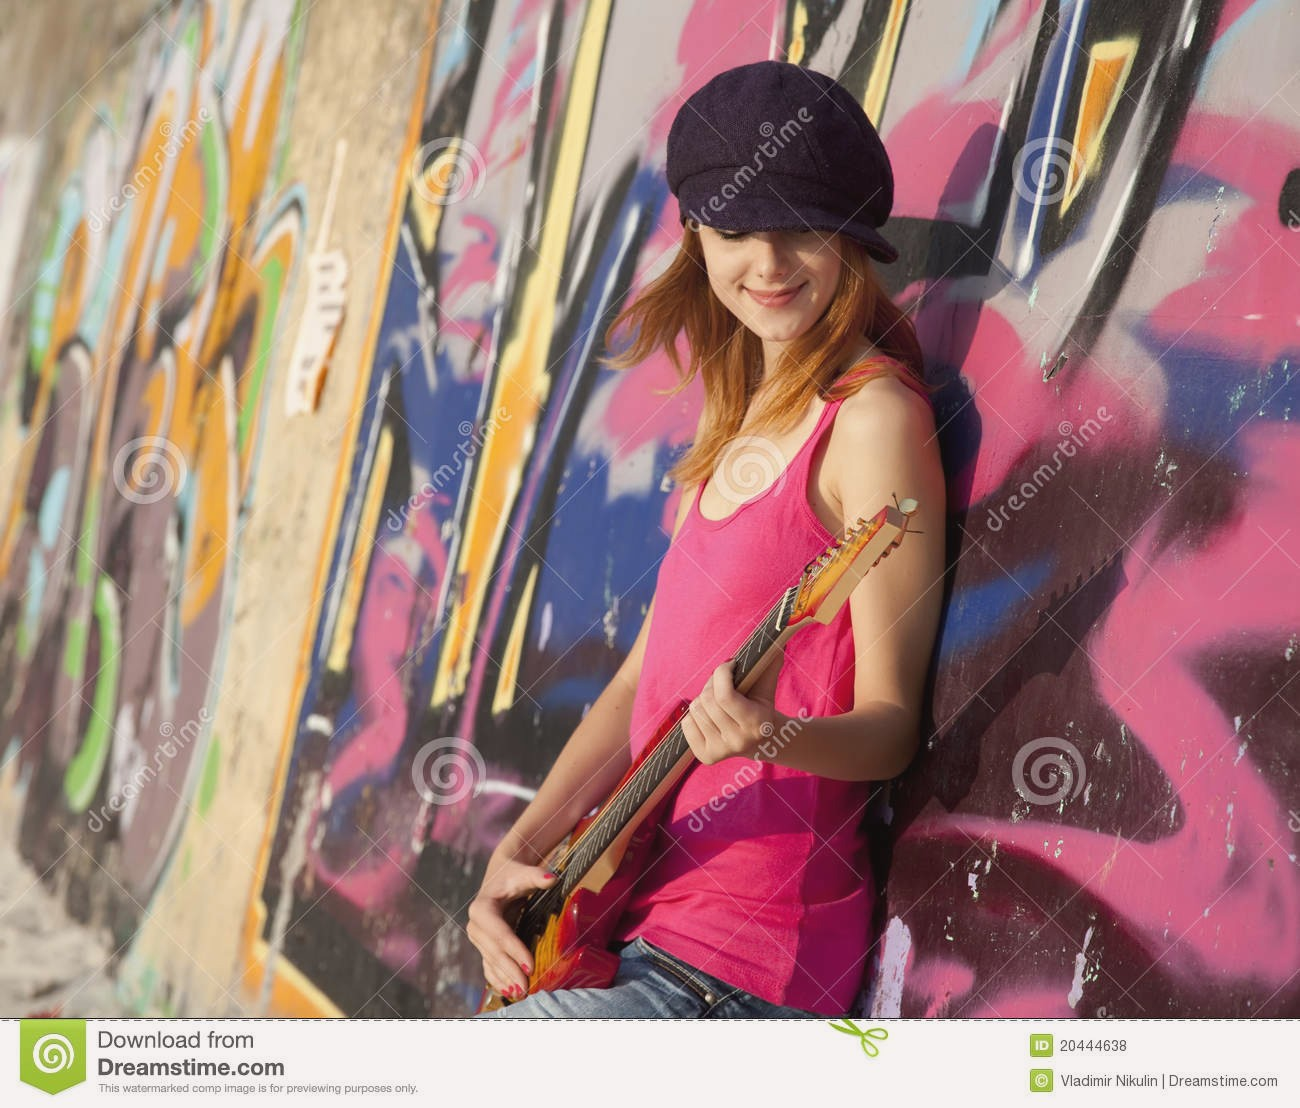 130 cool stylish profile pictures for facebook for girls